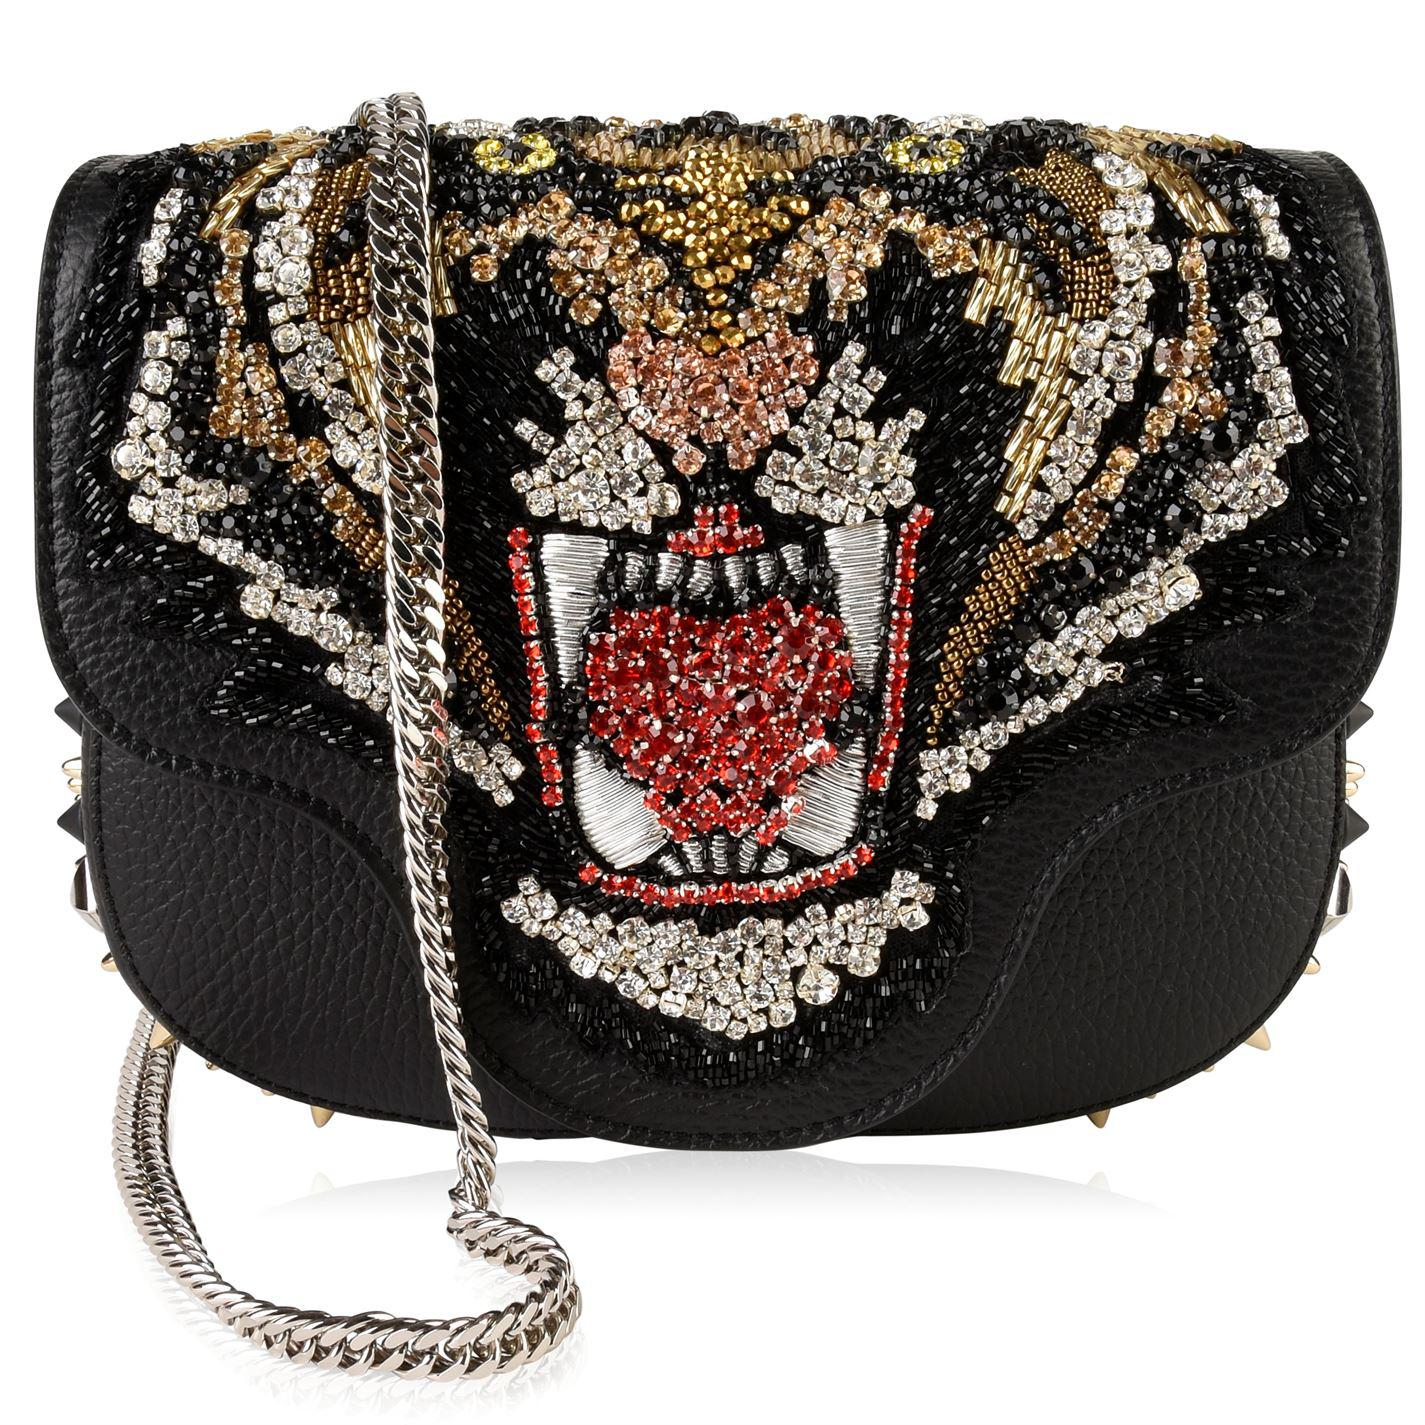 32f7417a2e2a Philipp Plein Julia Tiger Shoulder Bag in Black - Lyst